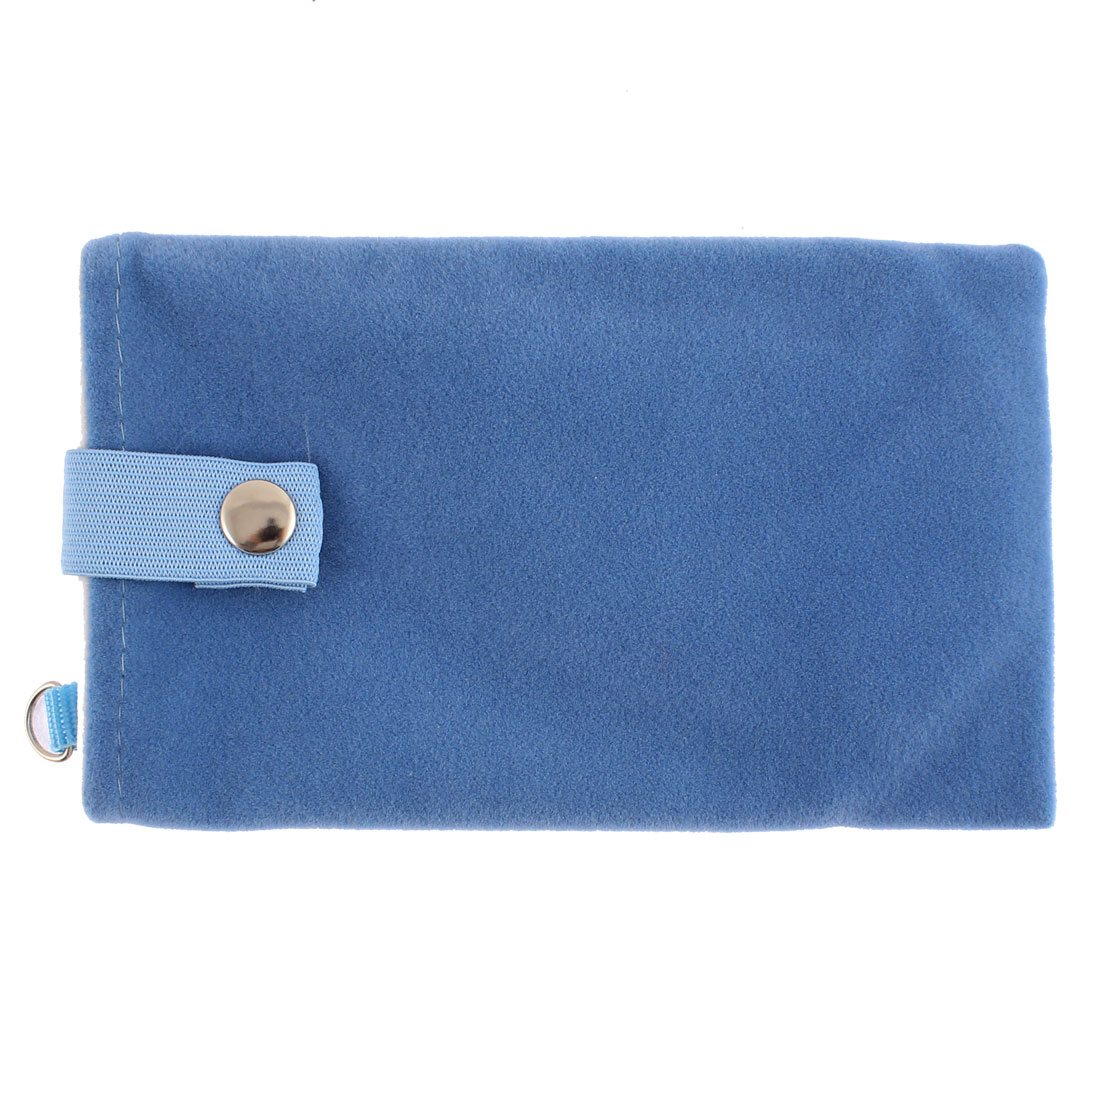 Velvet Magnetic Clasp Button Cell Phone Pouch Sleeve Bag Blue 16x9.5cm